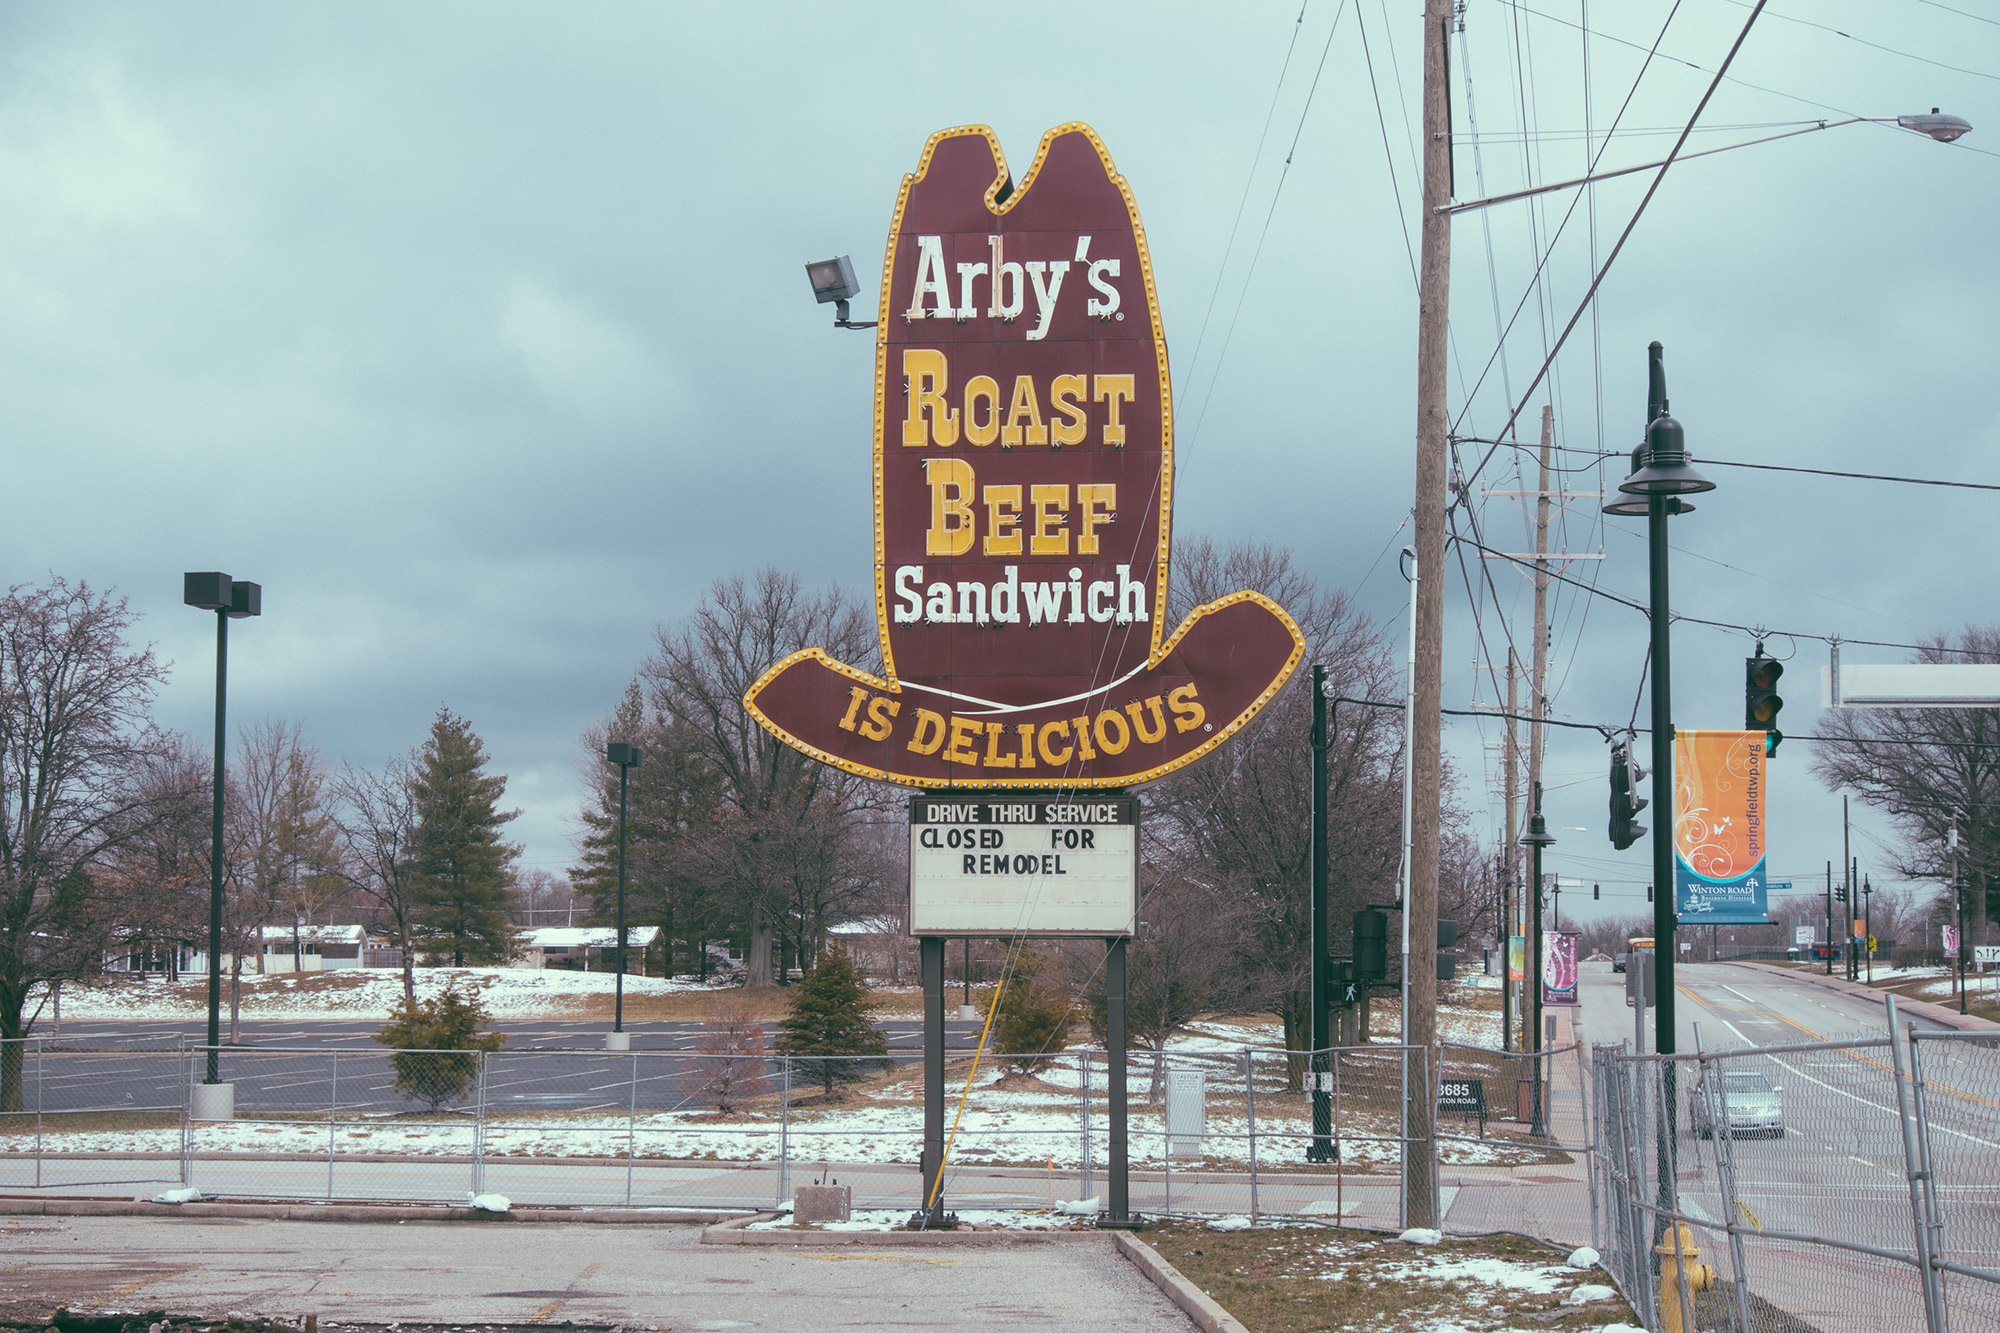 A classic Arby's sign